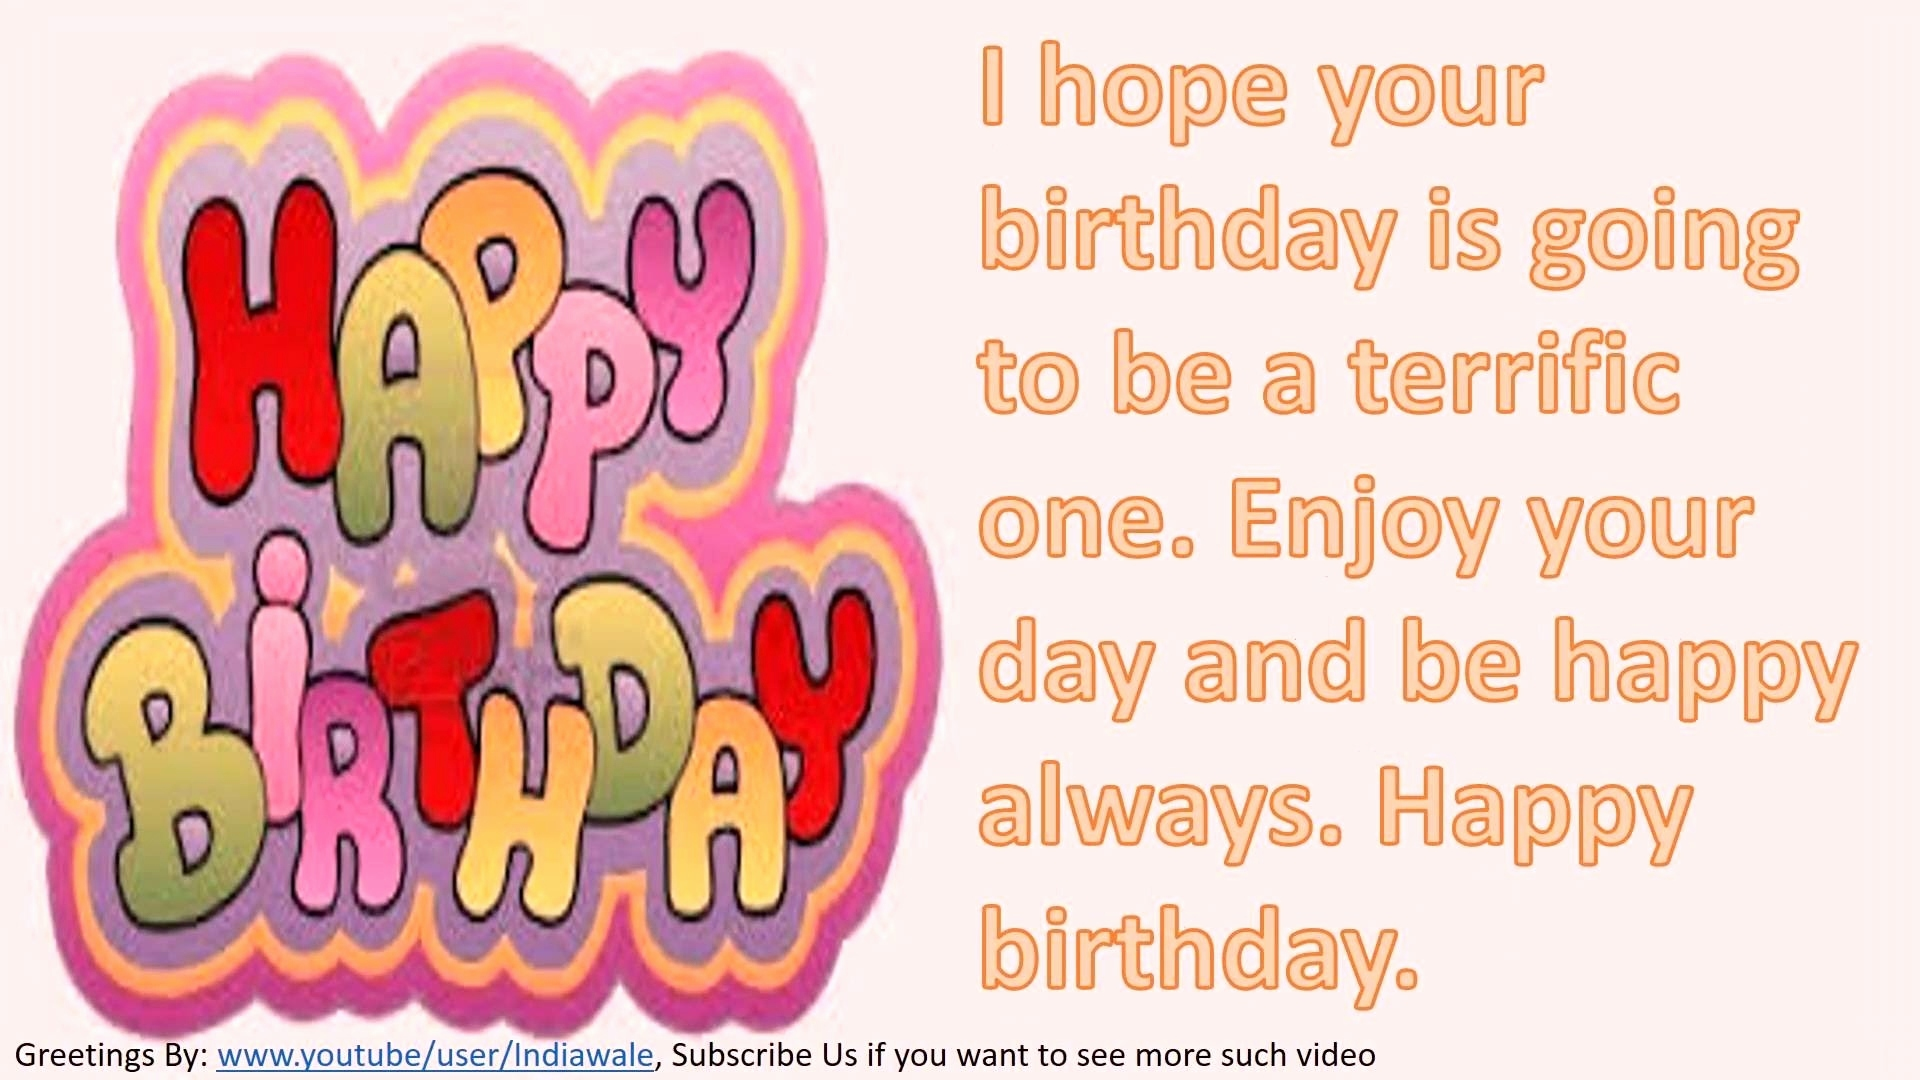 birthday card sms messages ; cute-birthday-card-messages-inspirational-birthday-card-sms-fresh-60-cute-birthday-sms-for-brother-from-the-of-cute-birthday-card-messages